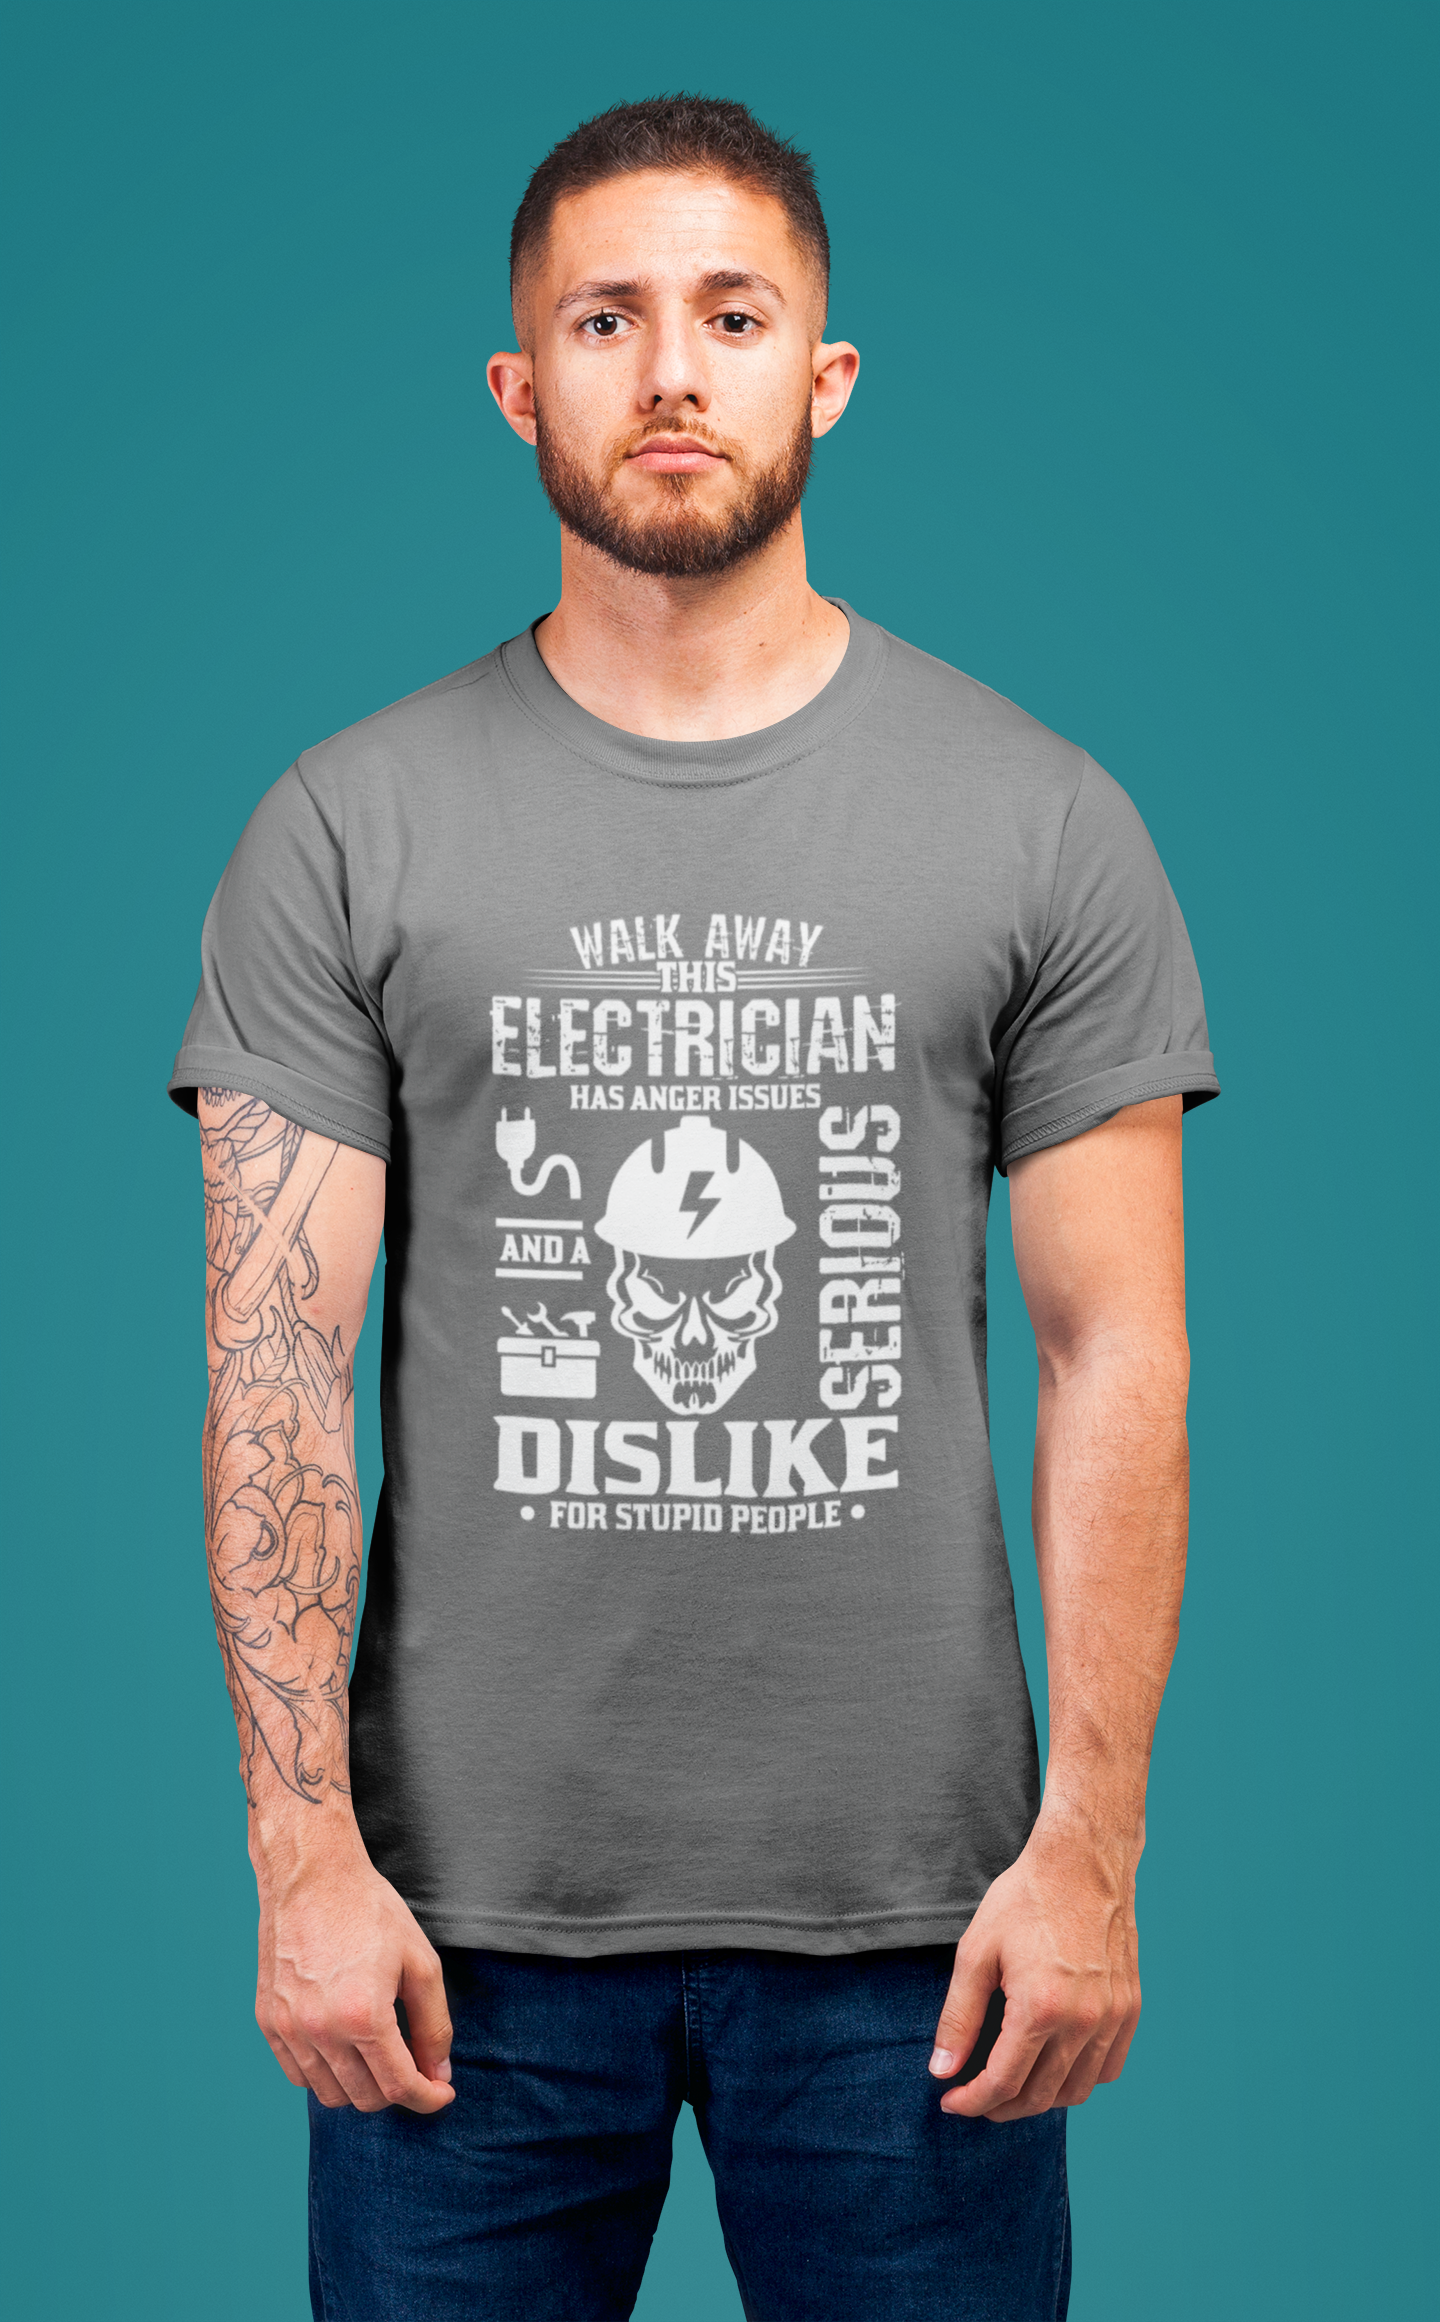 t-shirt-mockup-of-a-redhead-man-with-tattoos-standing-in-a-studio-22340 (1).png